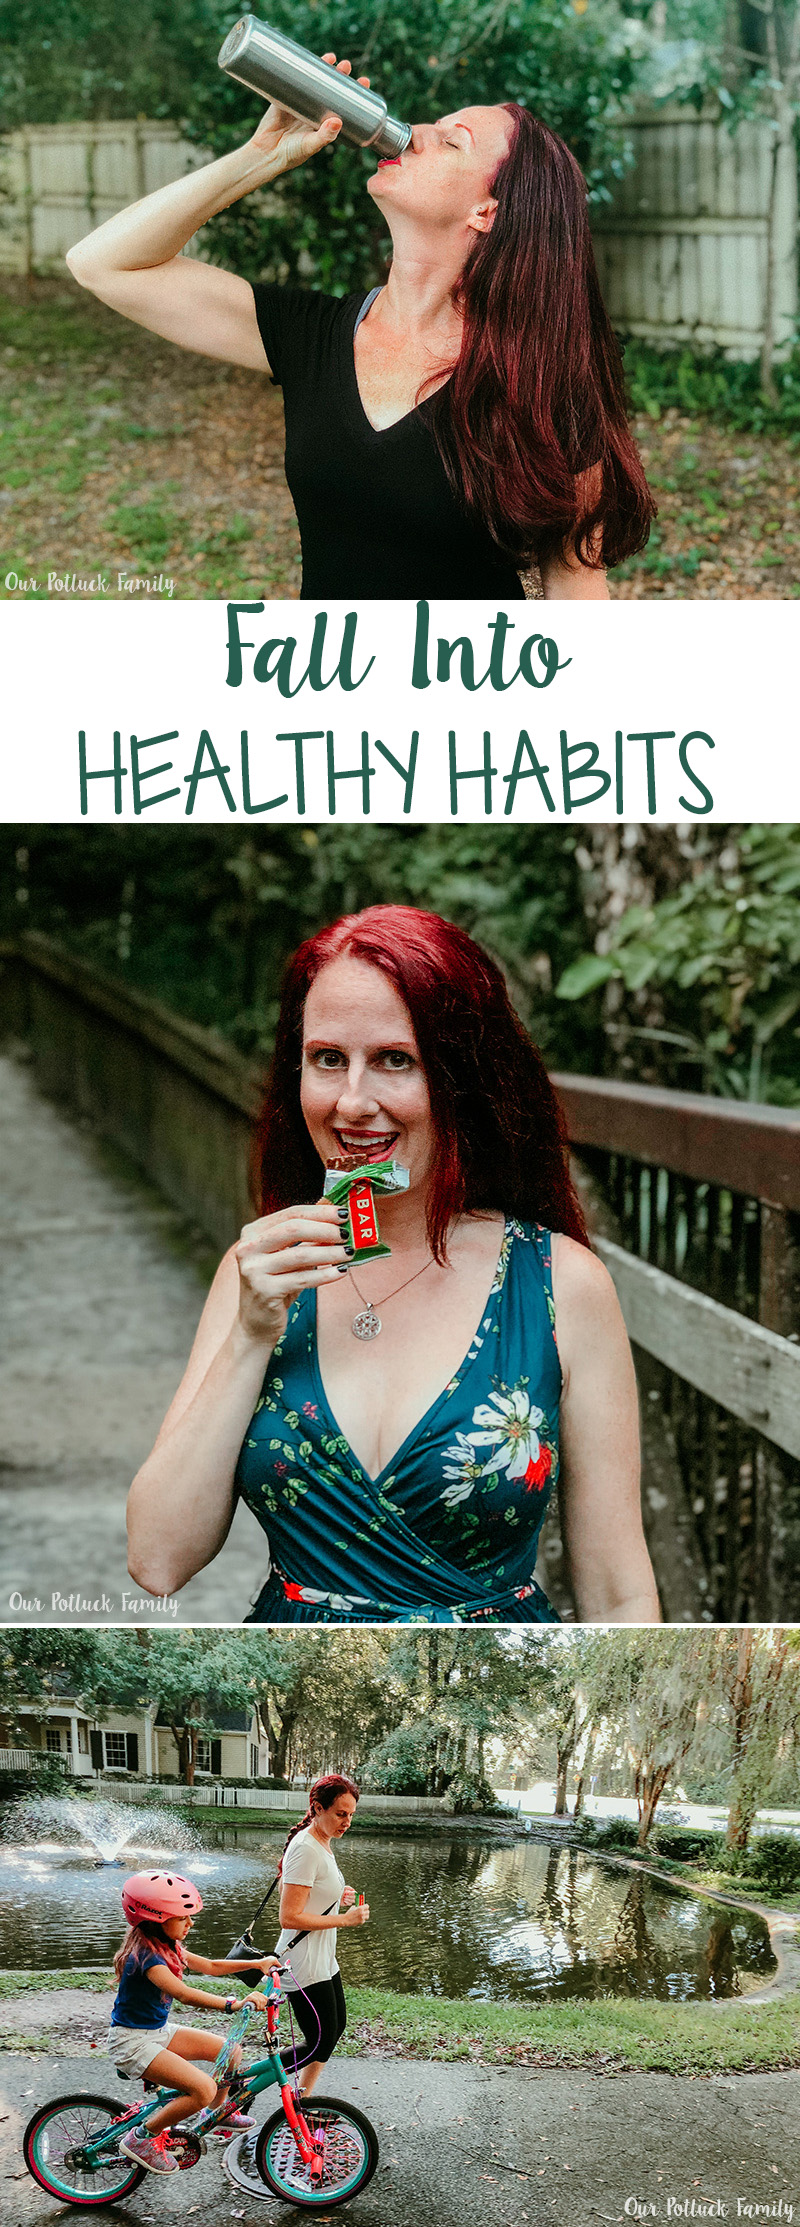 Fall Into Healthier Habits